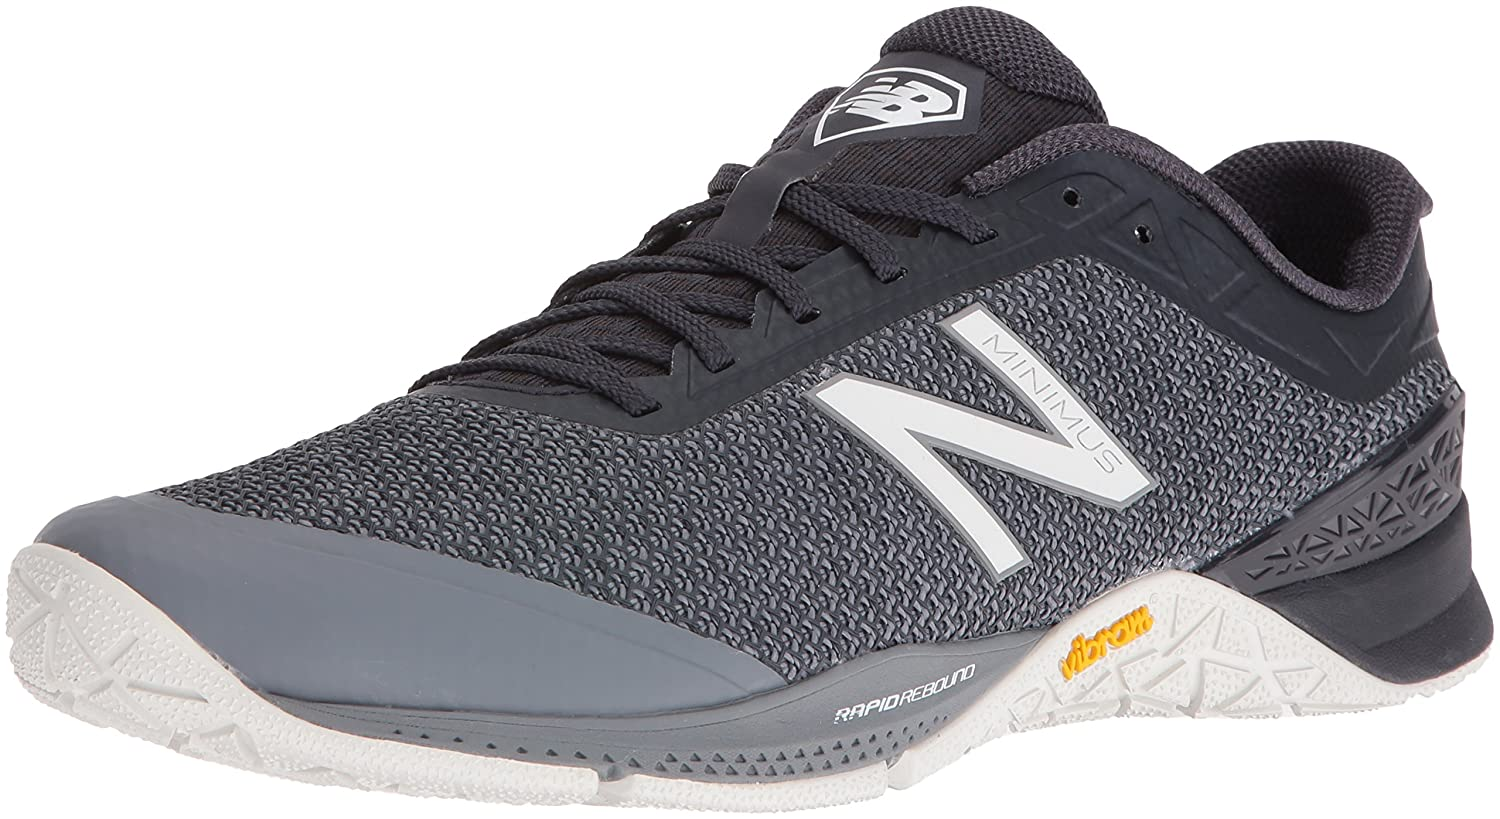 New Balance Men's MX40V1 Gym Workouts Training Shoe B01CQTGZ0Q 10 2E US|Grey